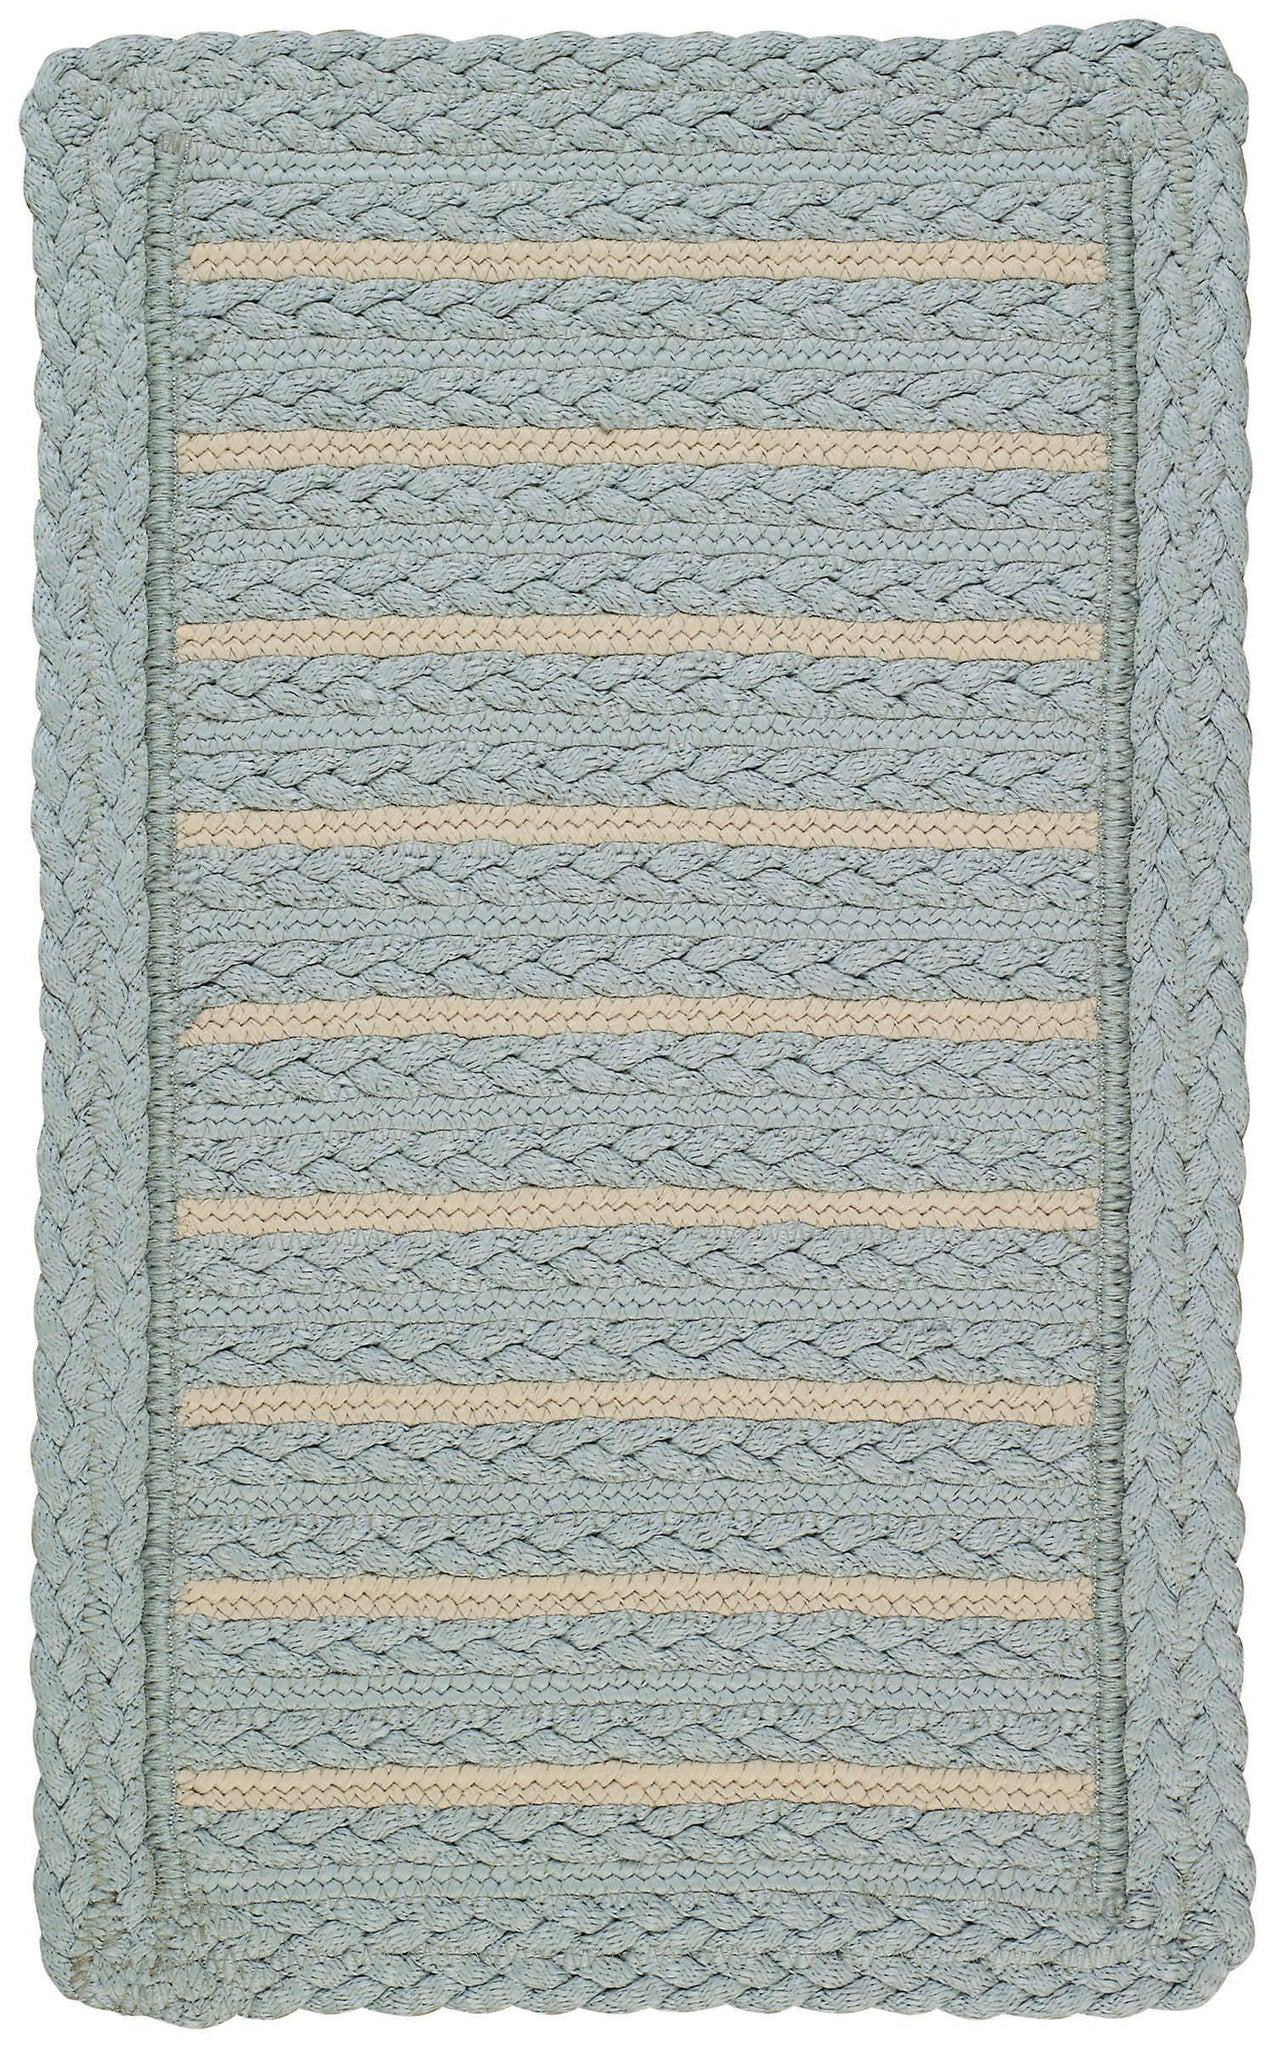 Capel Boathouse 0257 Blue 400 Area Rug main image